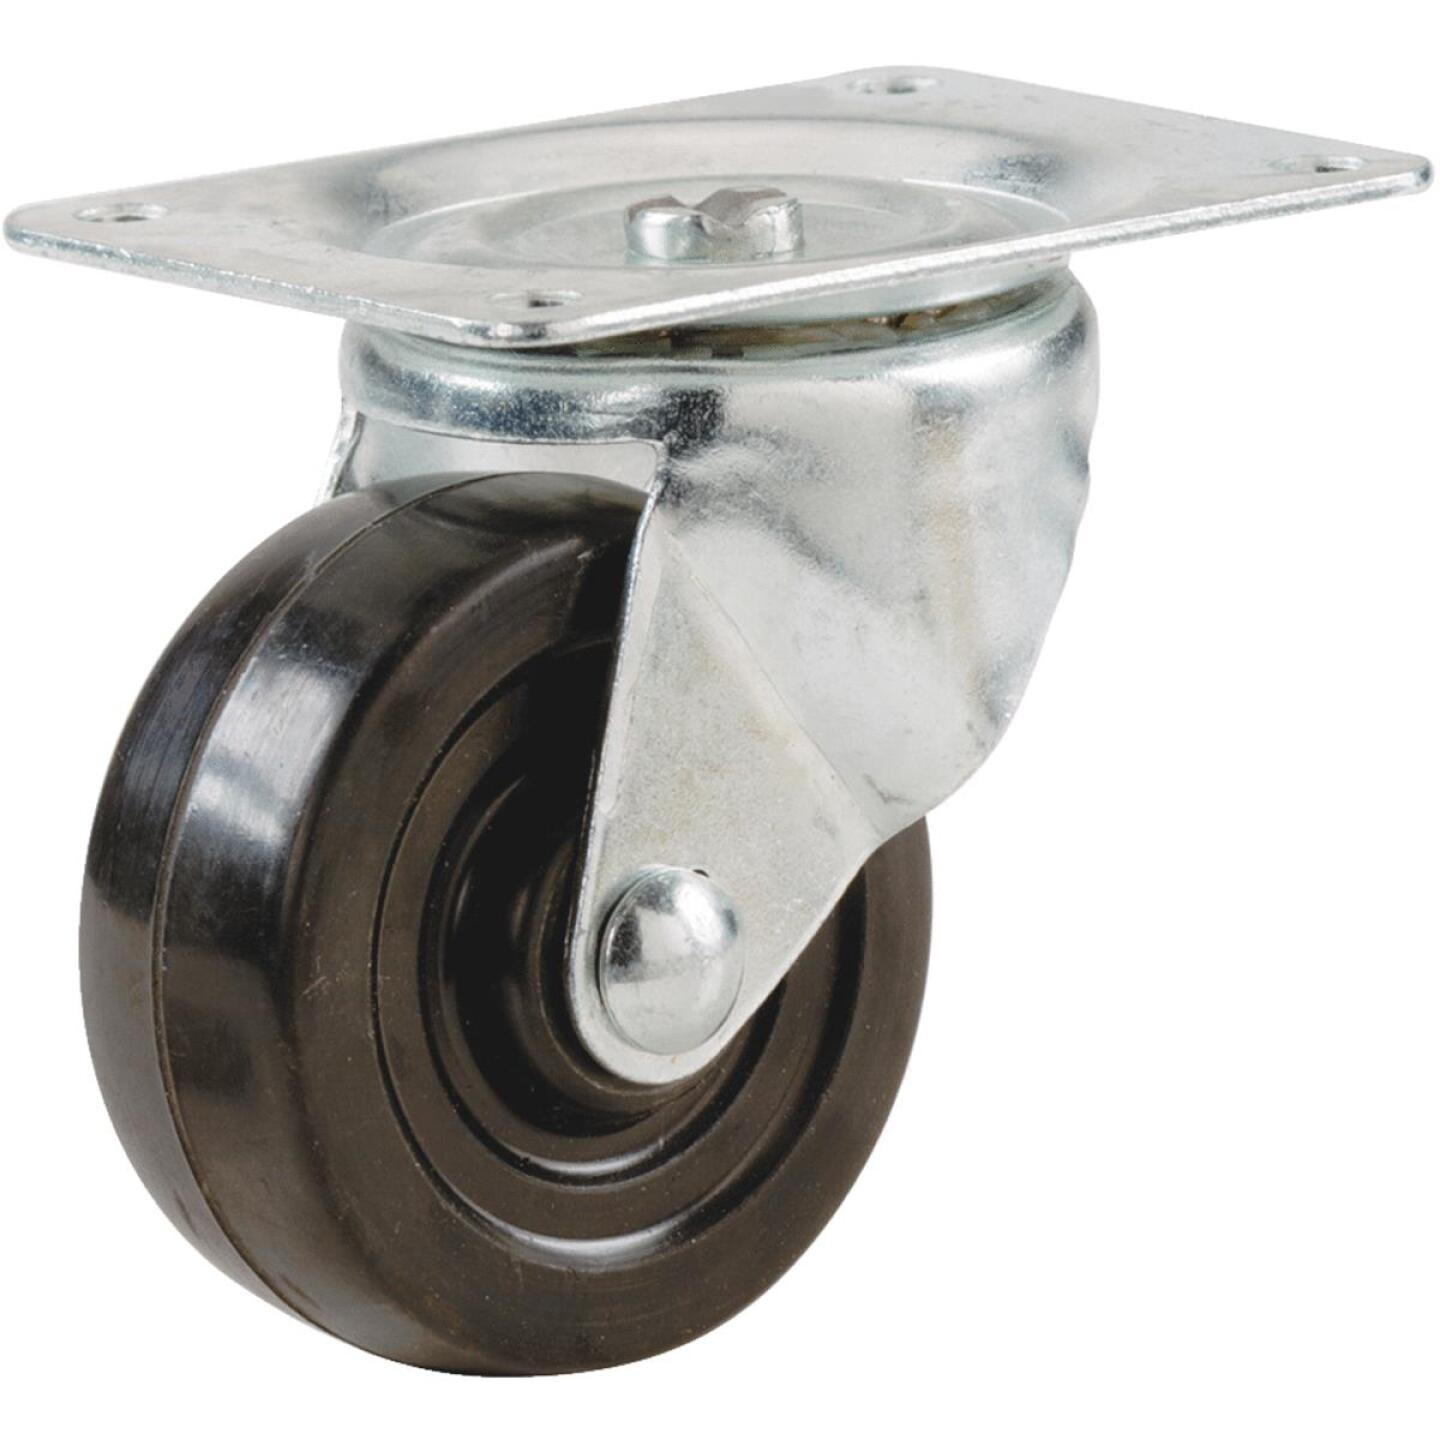 Shepherd 5 In. General-Duty Soft Rubber Swivel Plate Caster Image 1